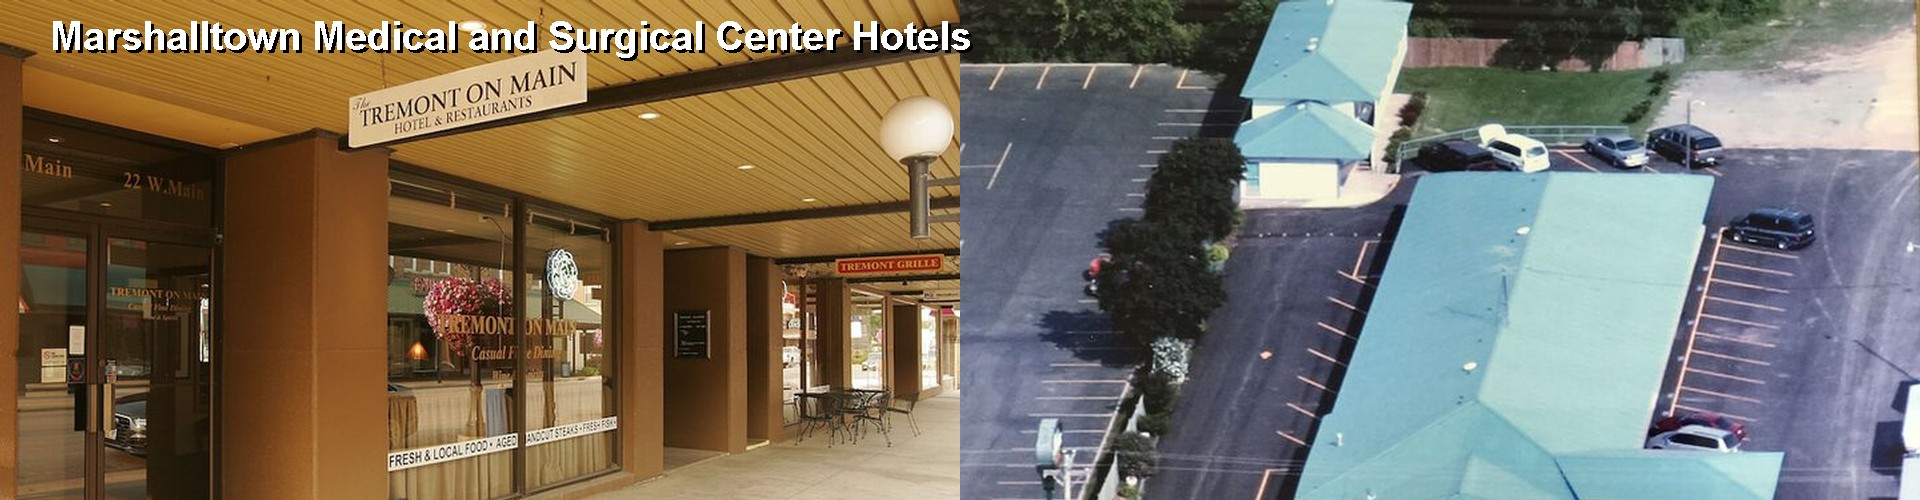 5 Best Hotels near Marshalltown Medical and Surgical Center